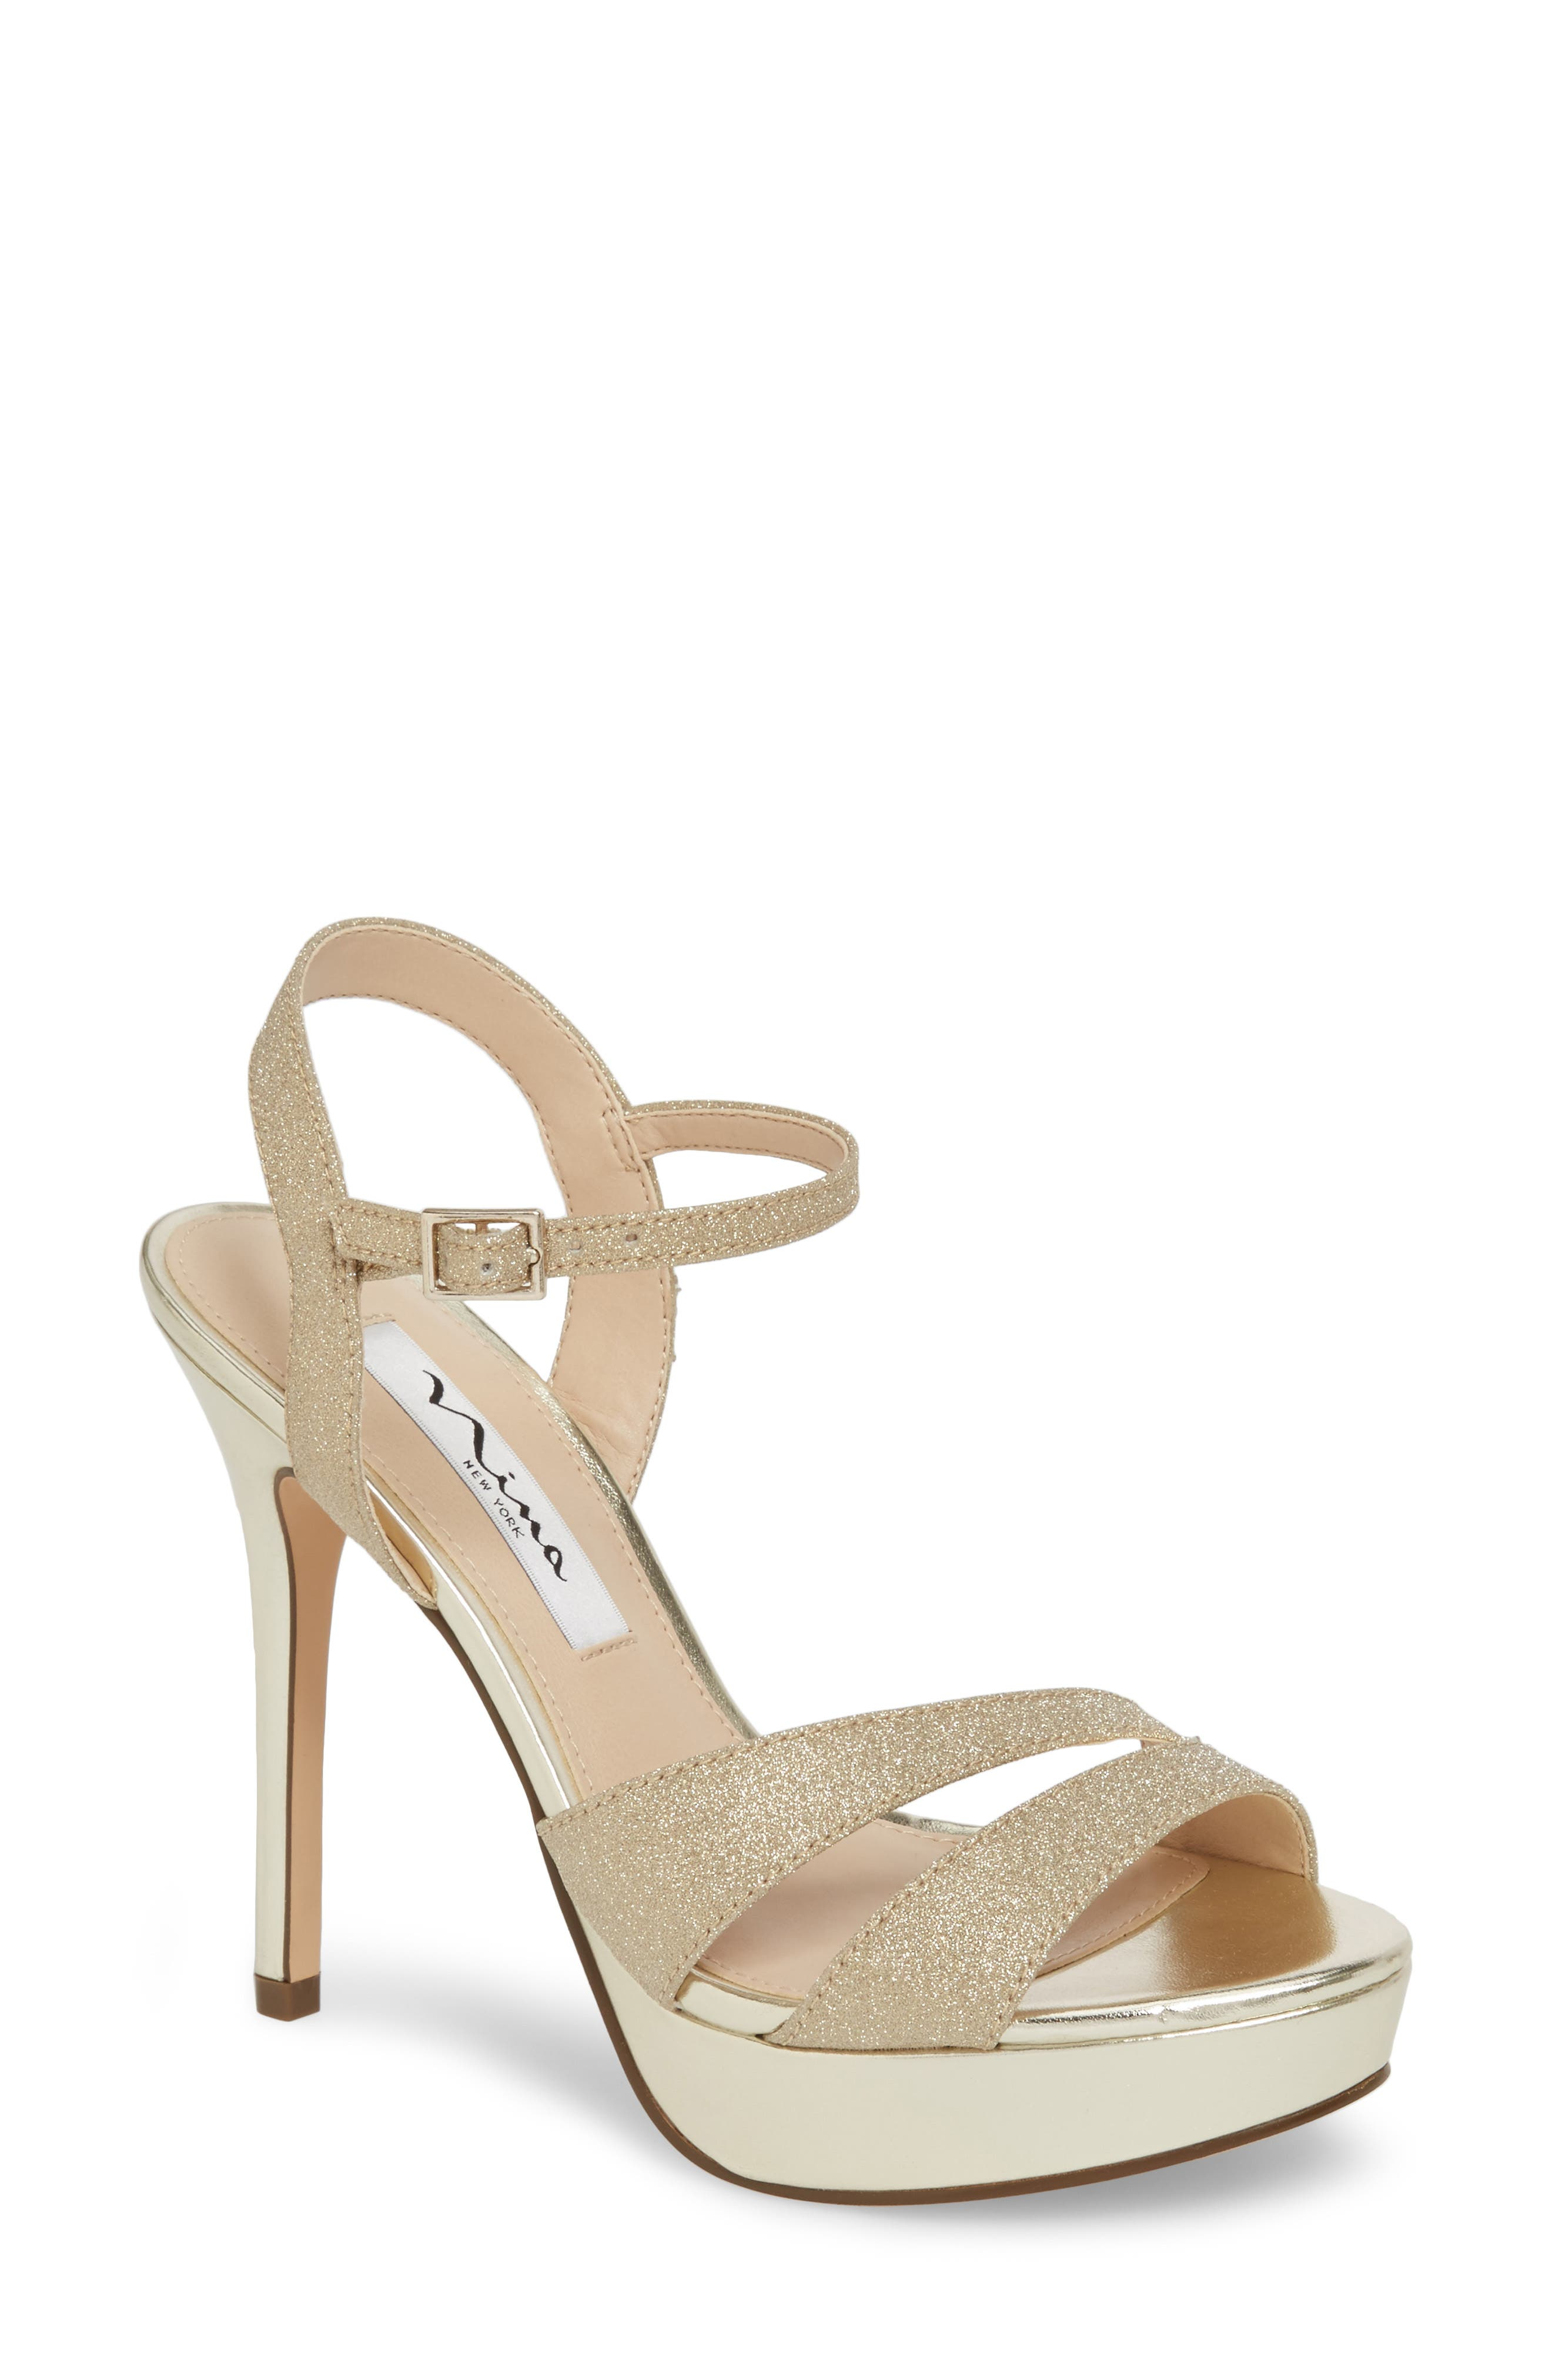 Silana Platform Sandal,                         Main,                         color, Gold Glitter Fabric